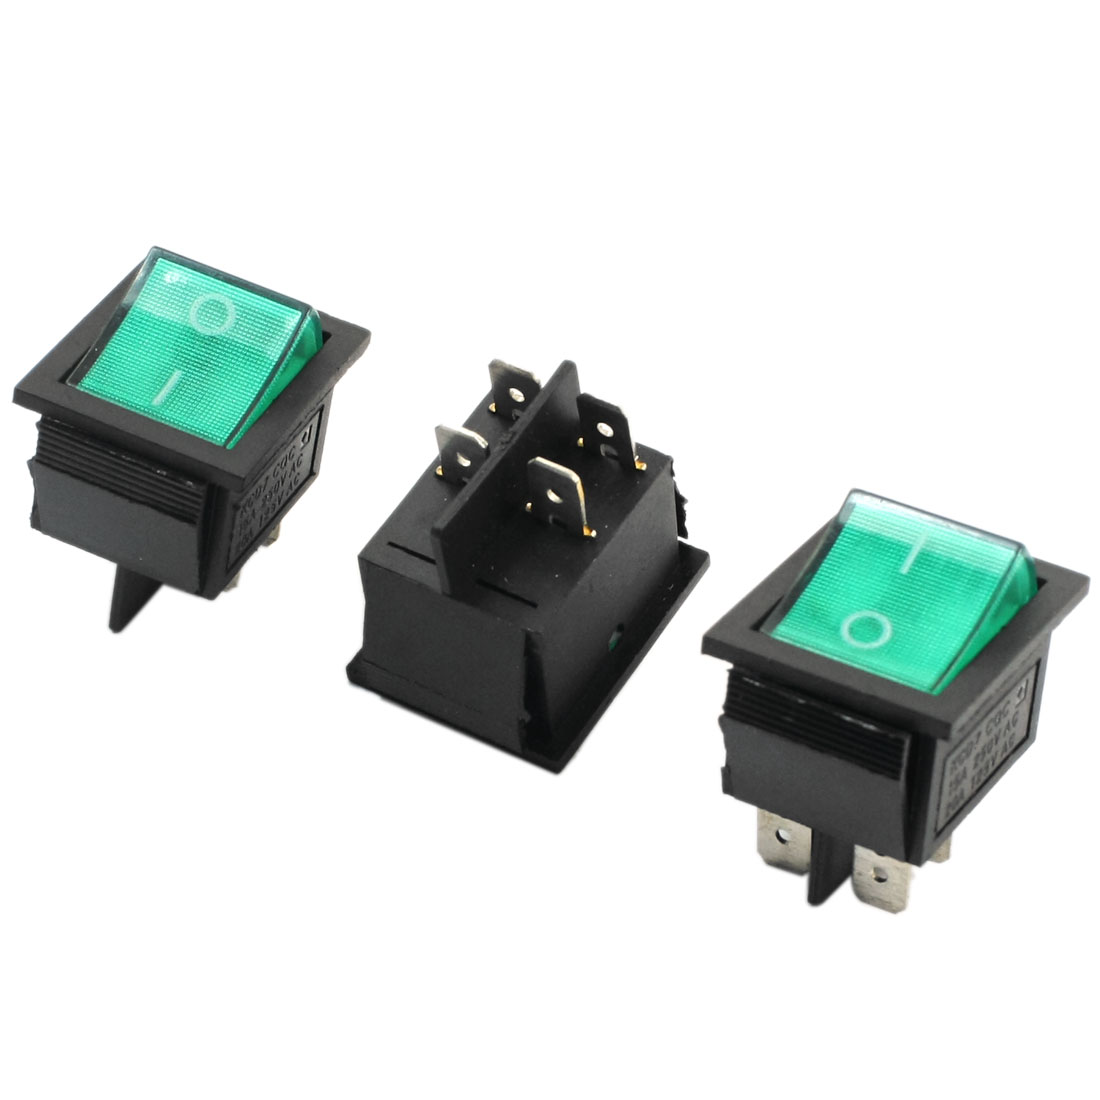 AC 110-220V Lamp Volt Green Button SPDT ON/OFF Boat Rocker Switch 3pcs